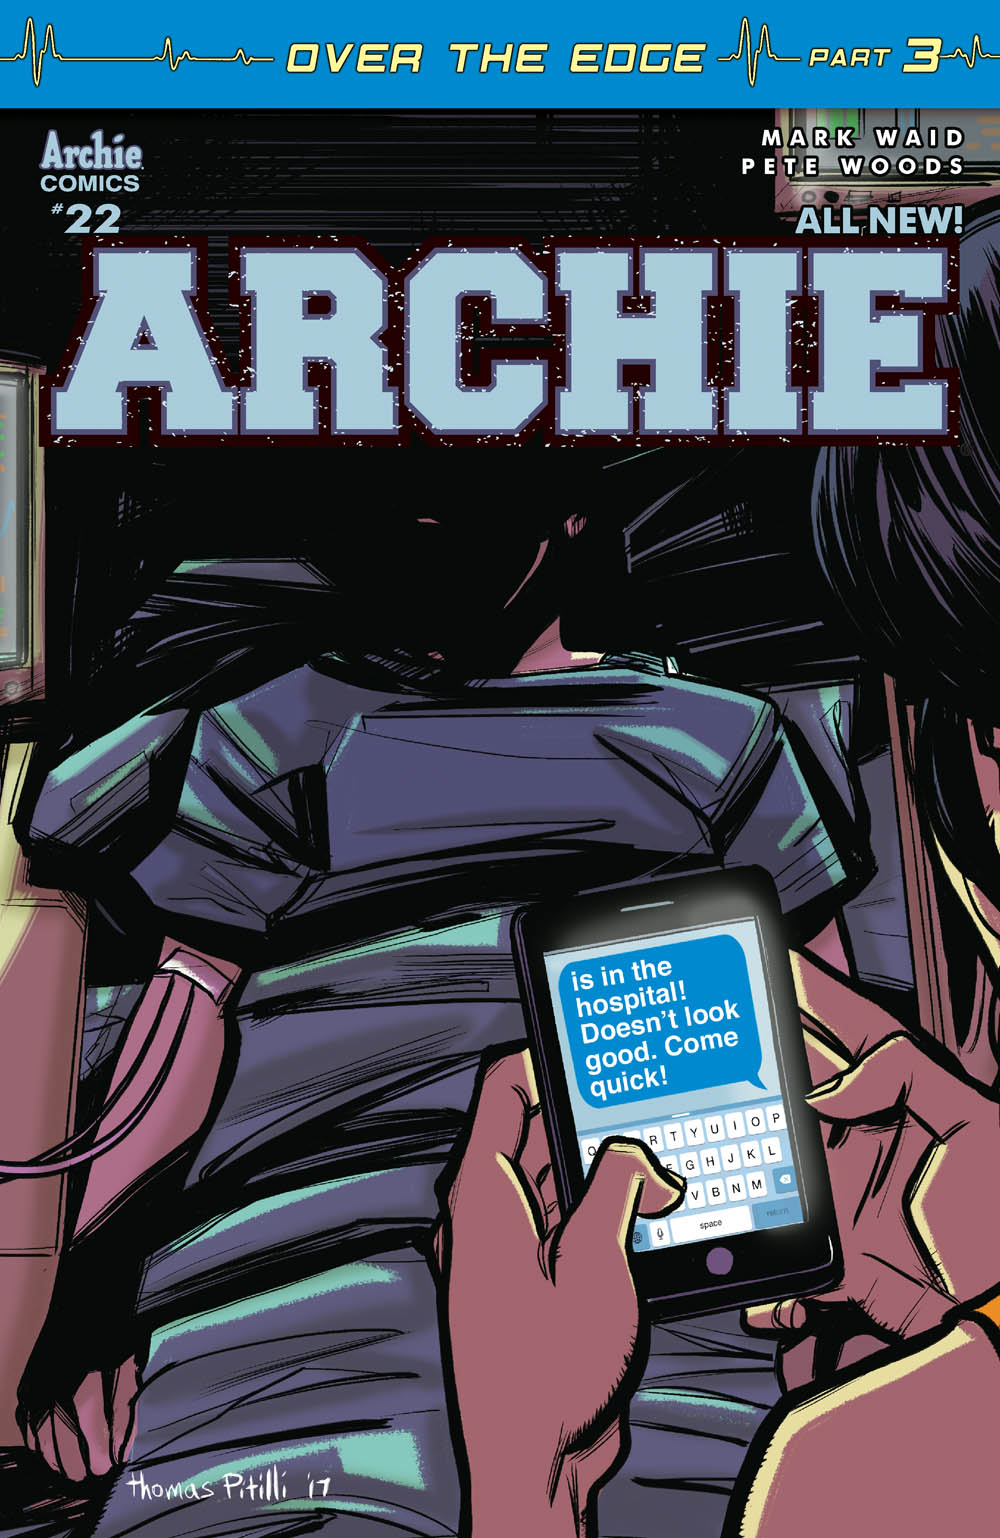 22 New Years Nail Nail Art Designs Ideas: ARCHIE #22 Preview